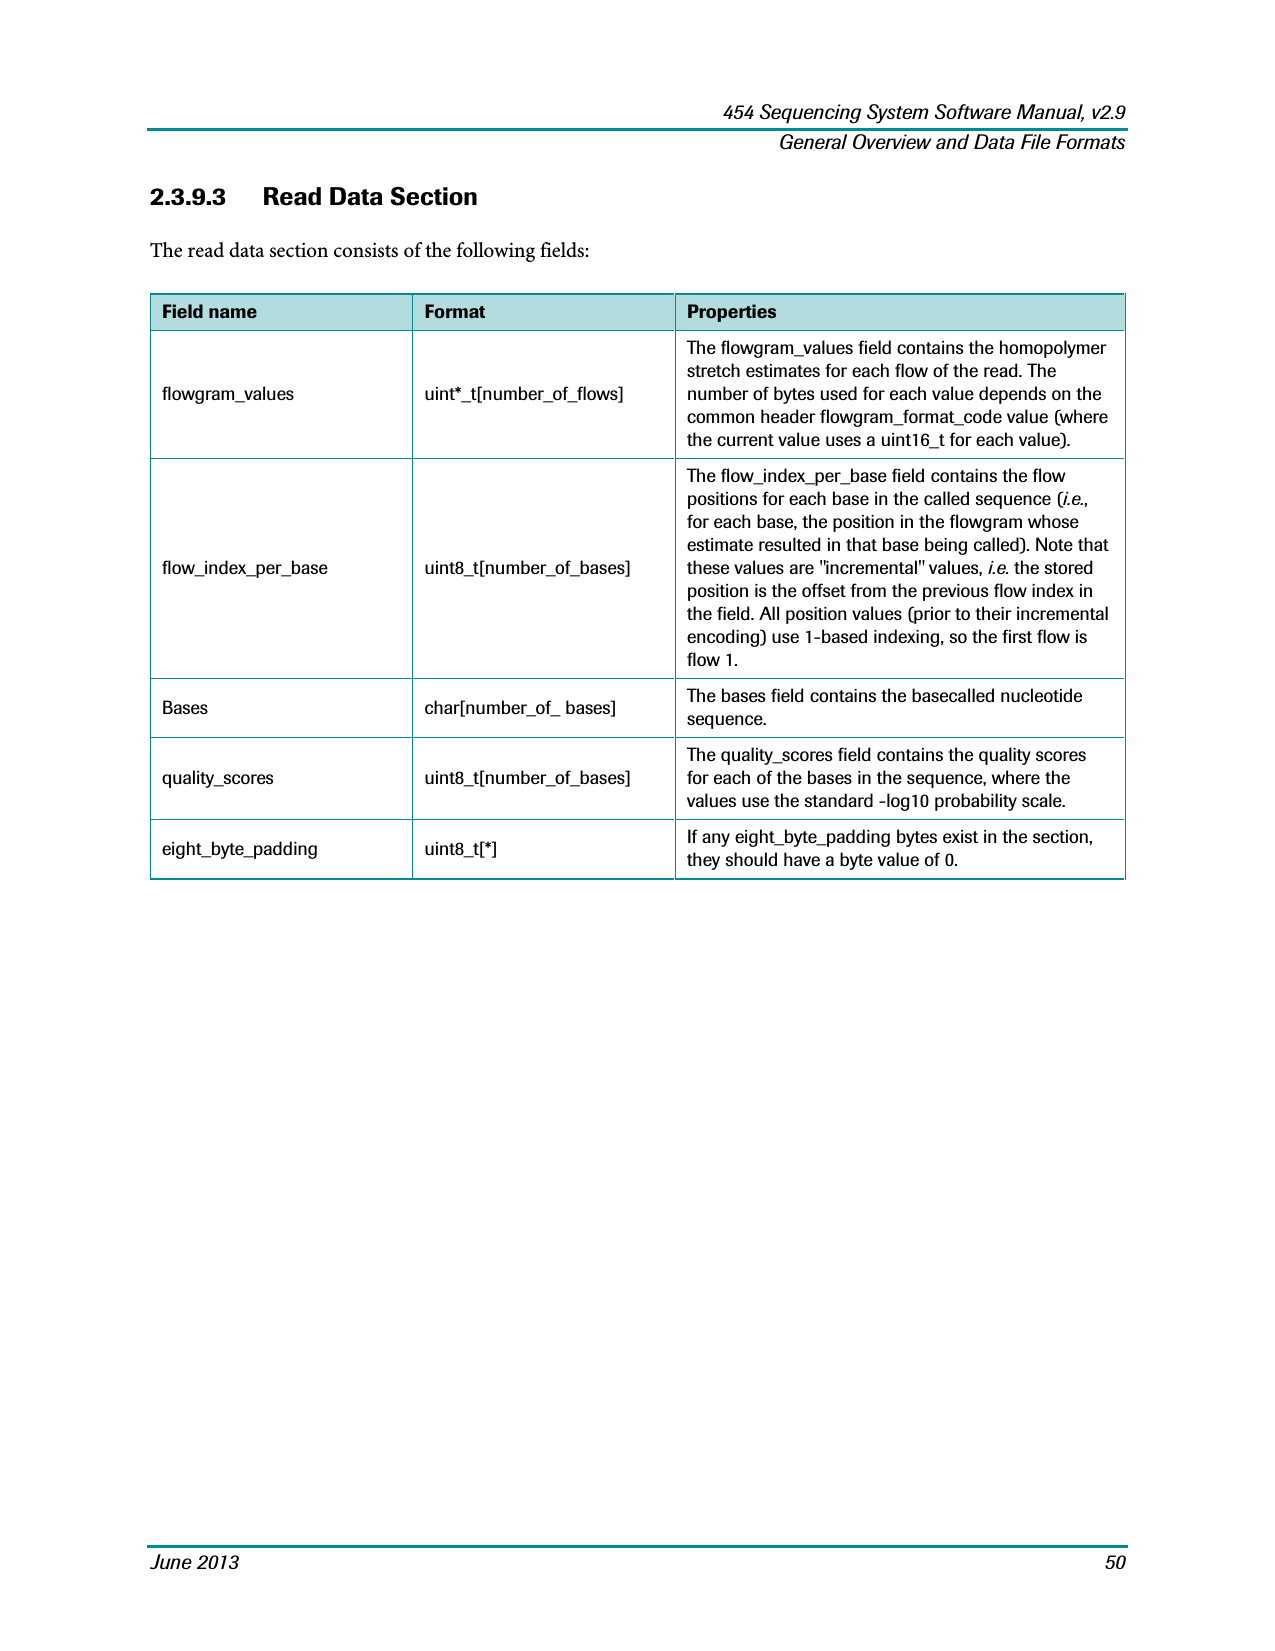 USM-00058.09_454SeqSys_SWManual-v2.9_Overview-50.png